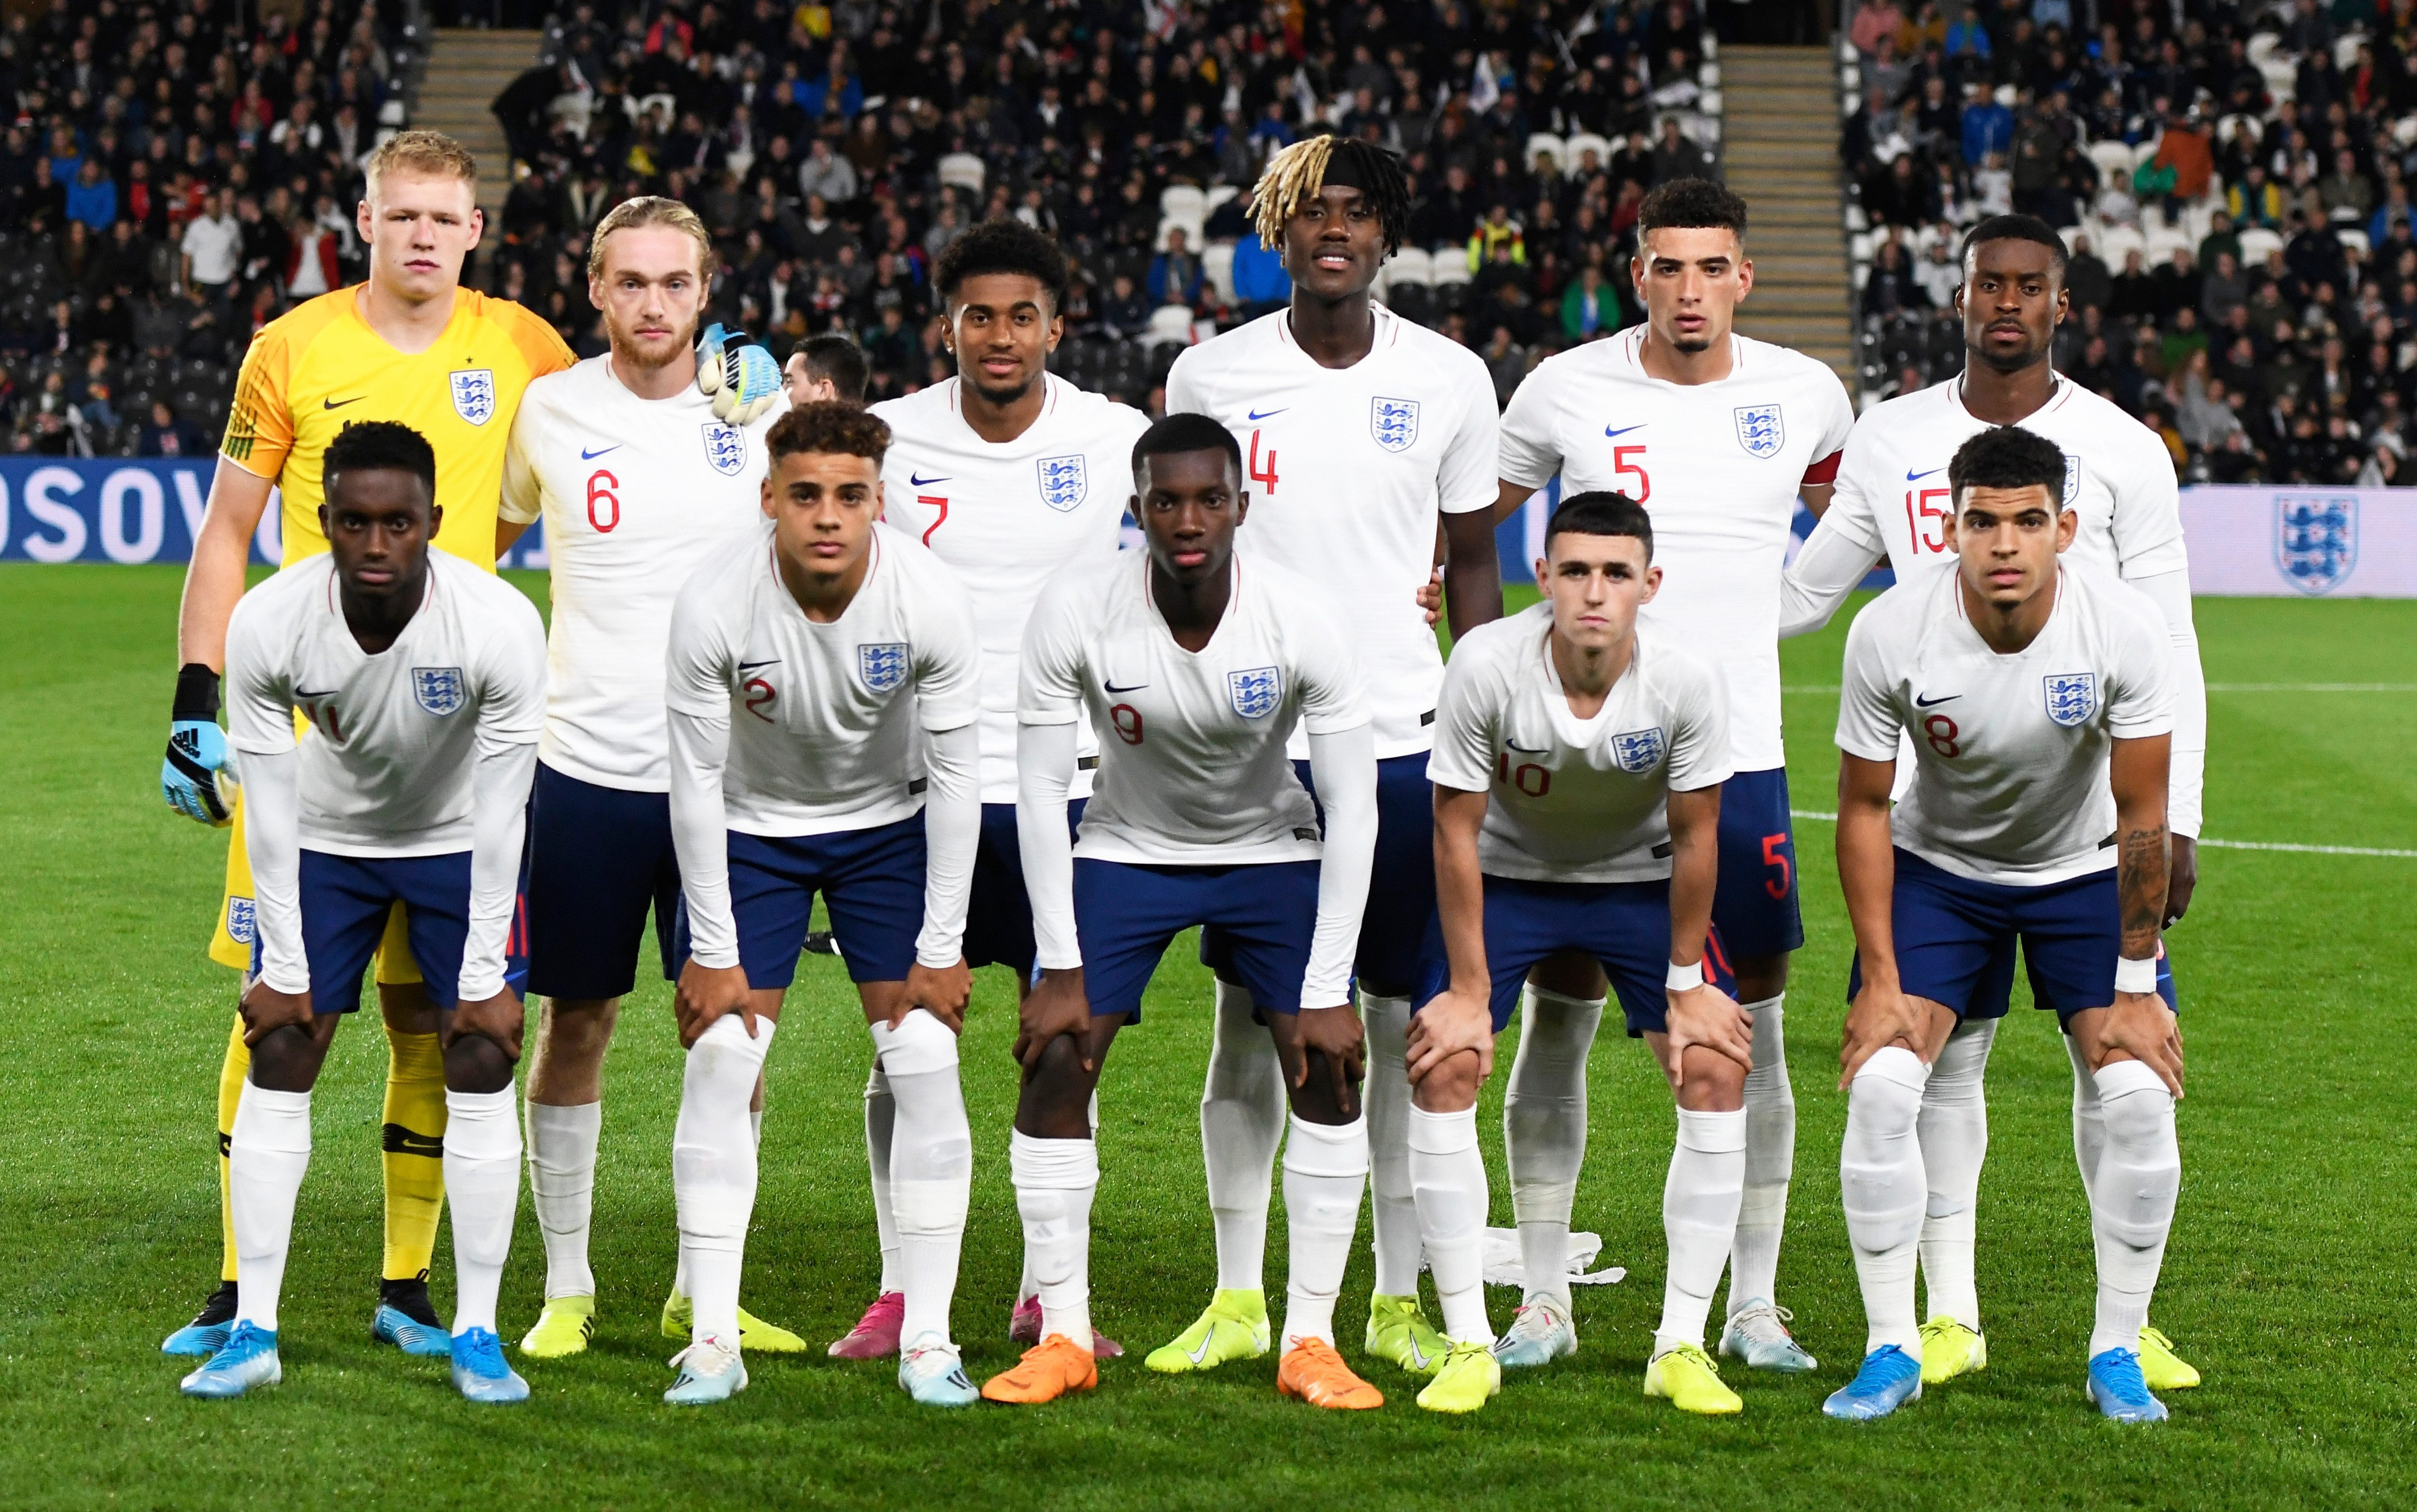 The young English side got the job done